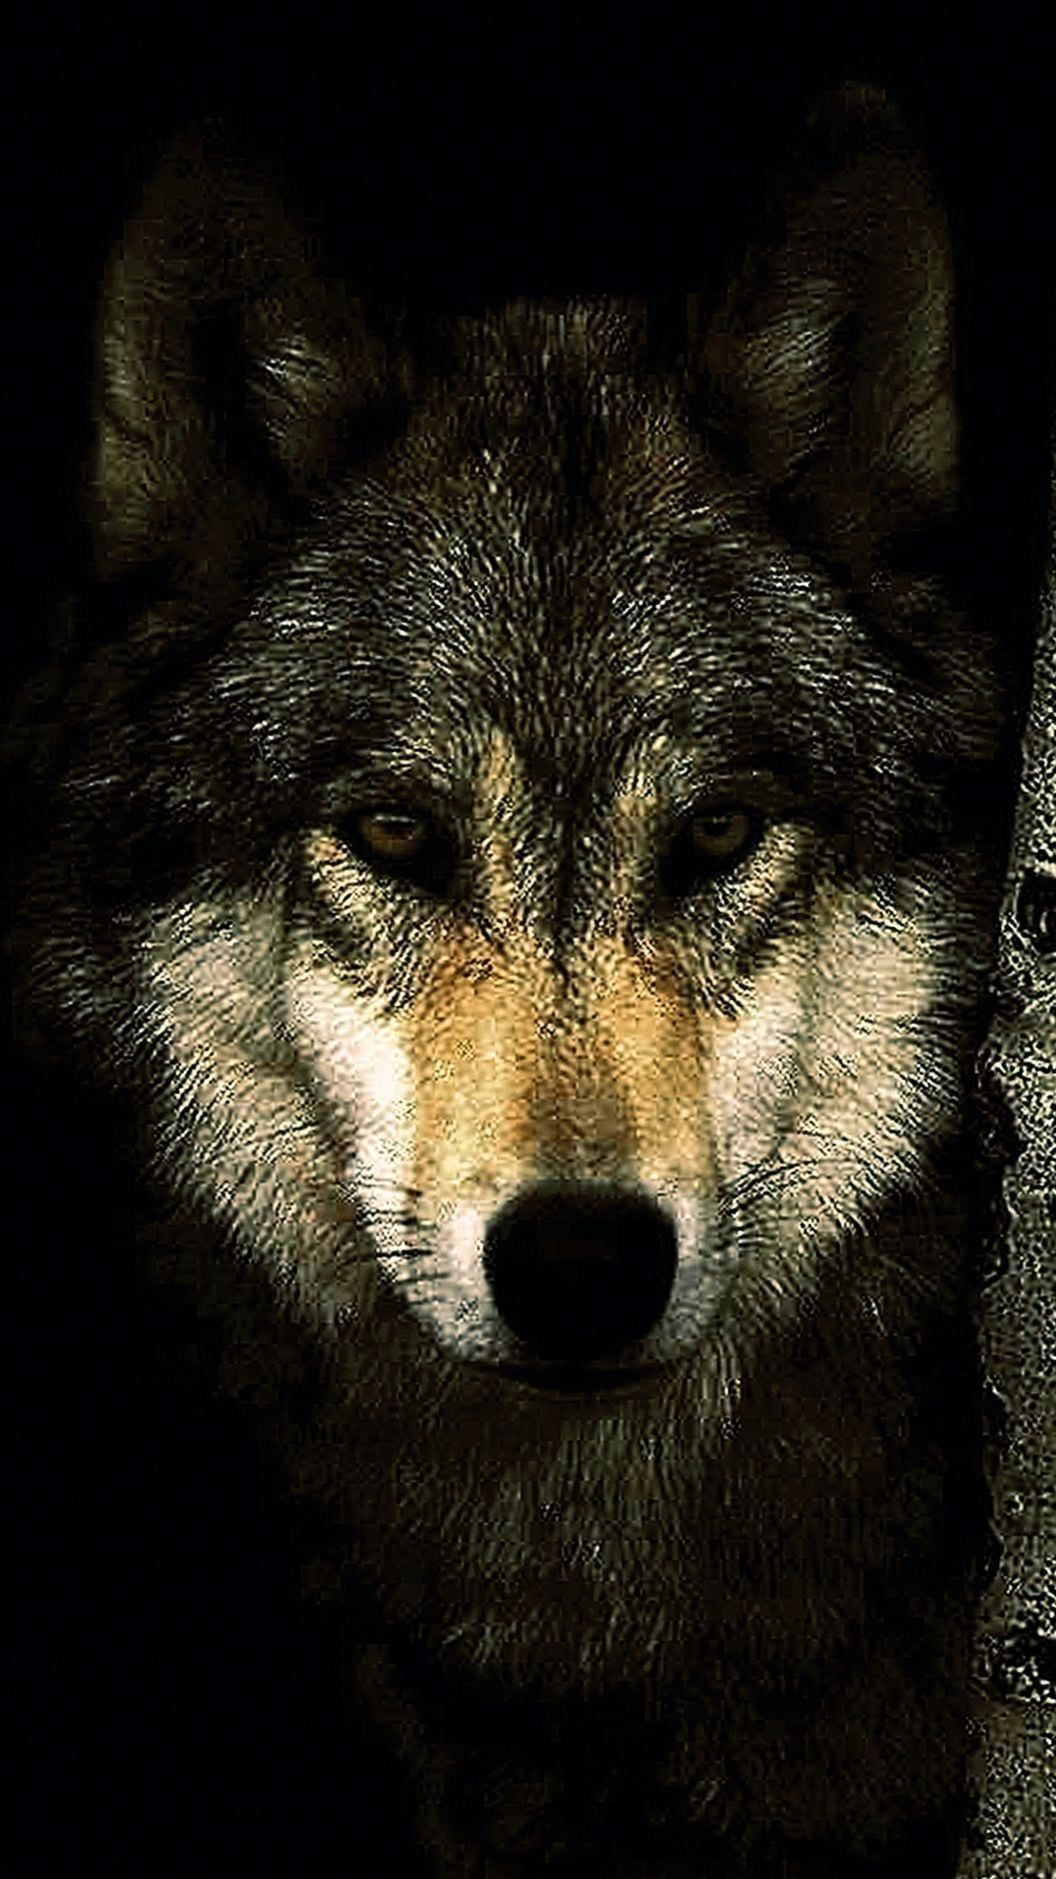 Black Wolf Wallpapers For Mobile Black Wolf Wallpapers For Mobile Iphone Wallpaper Wolf Wolf Wallpaper Black Wolf